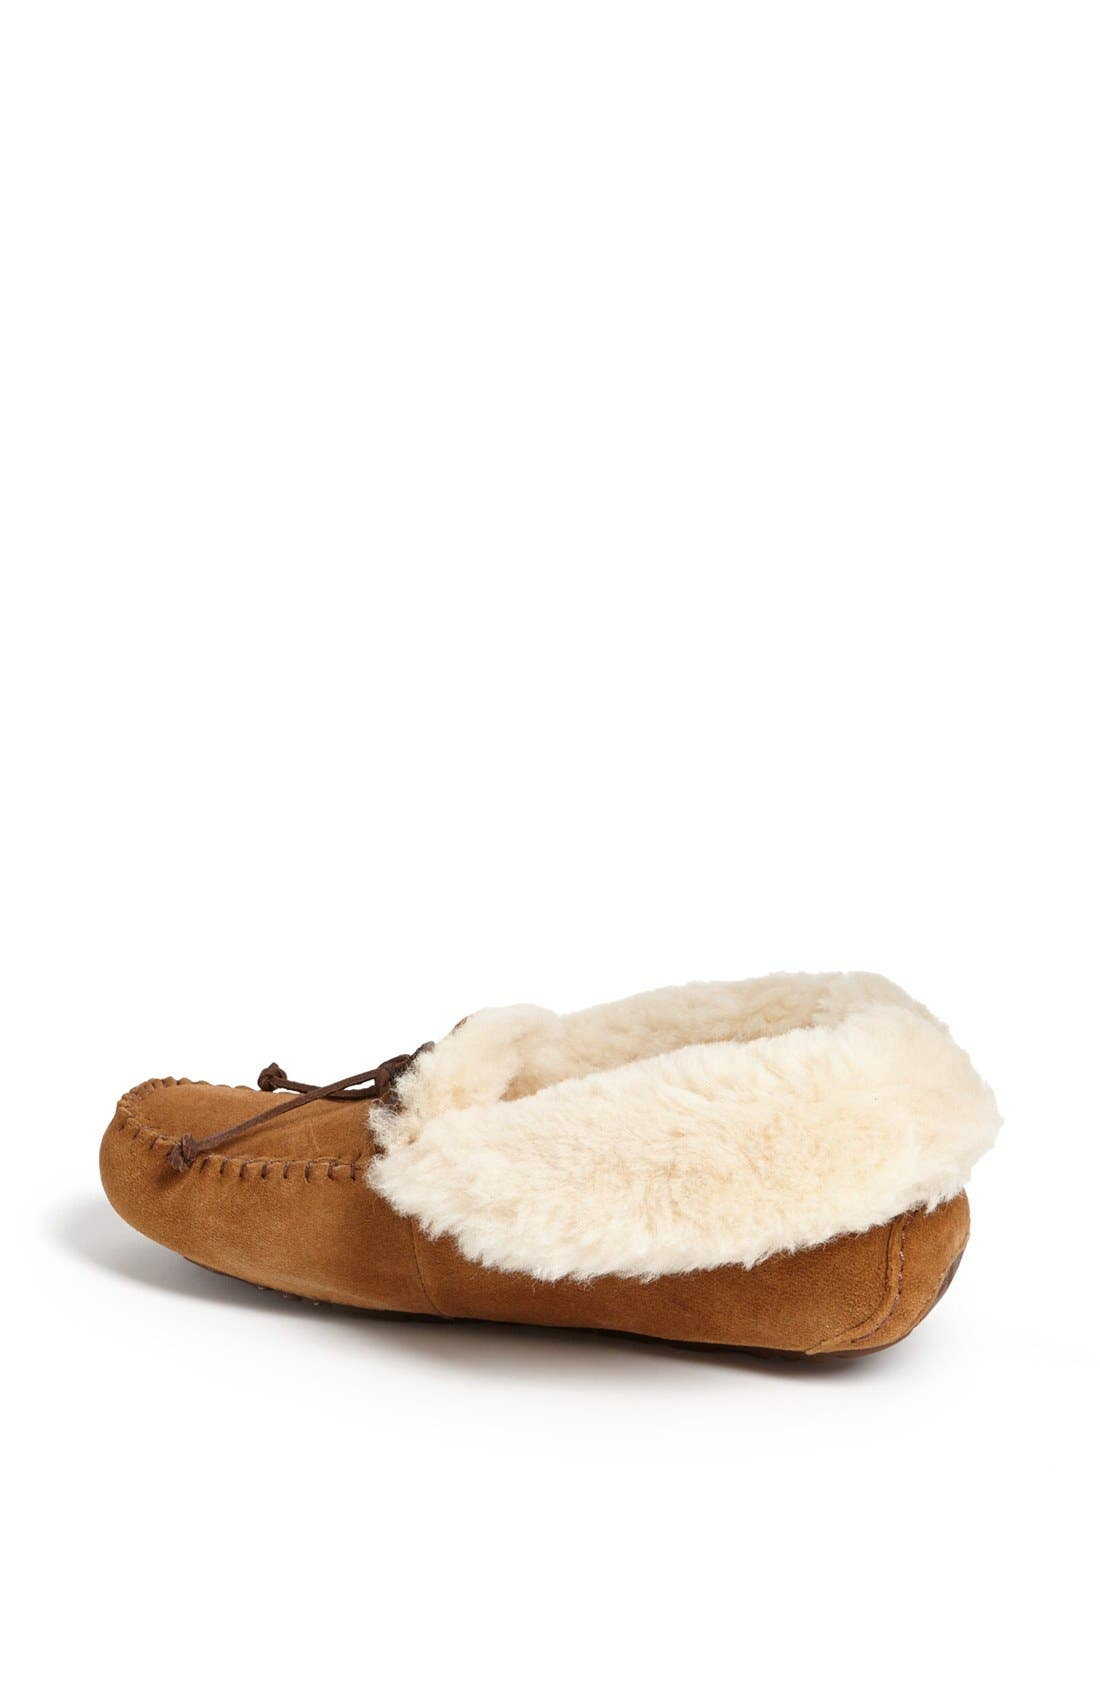 UGGpure<sup>™</sup> Alena Suede Slipper Bootie,                             Alternate thumbnail 4, color,                             CHESTNUT